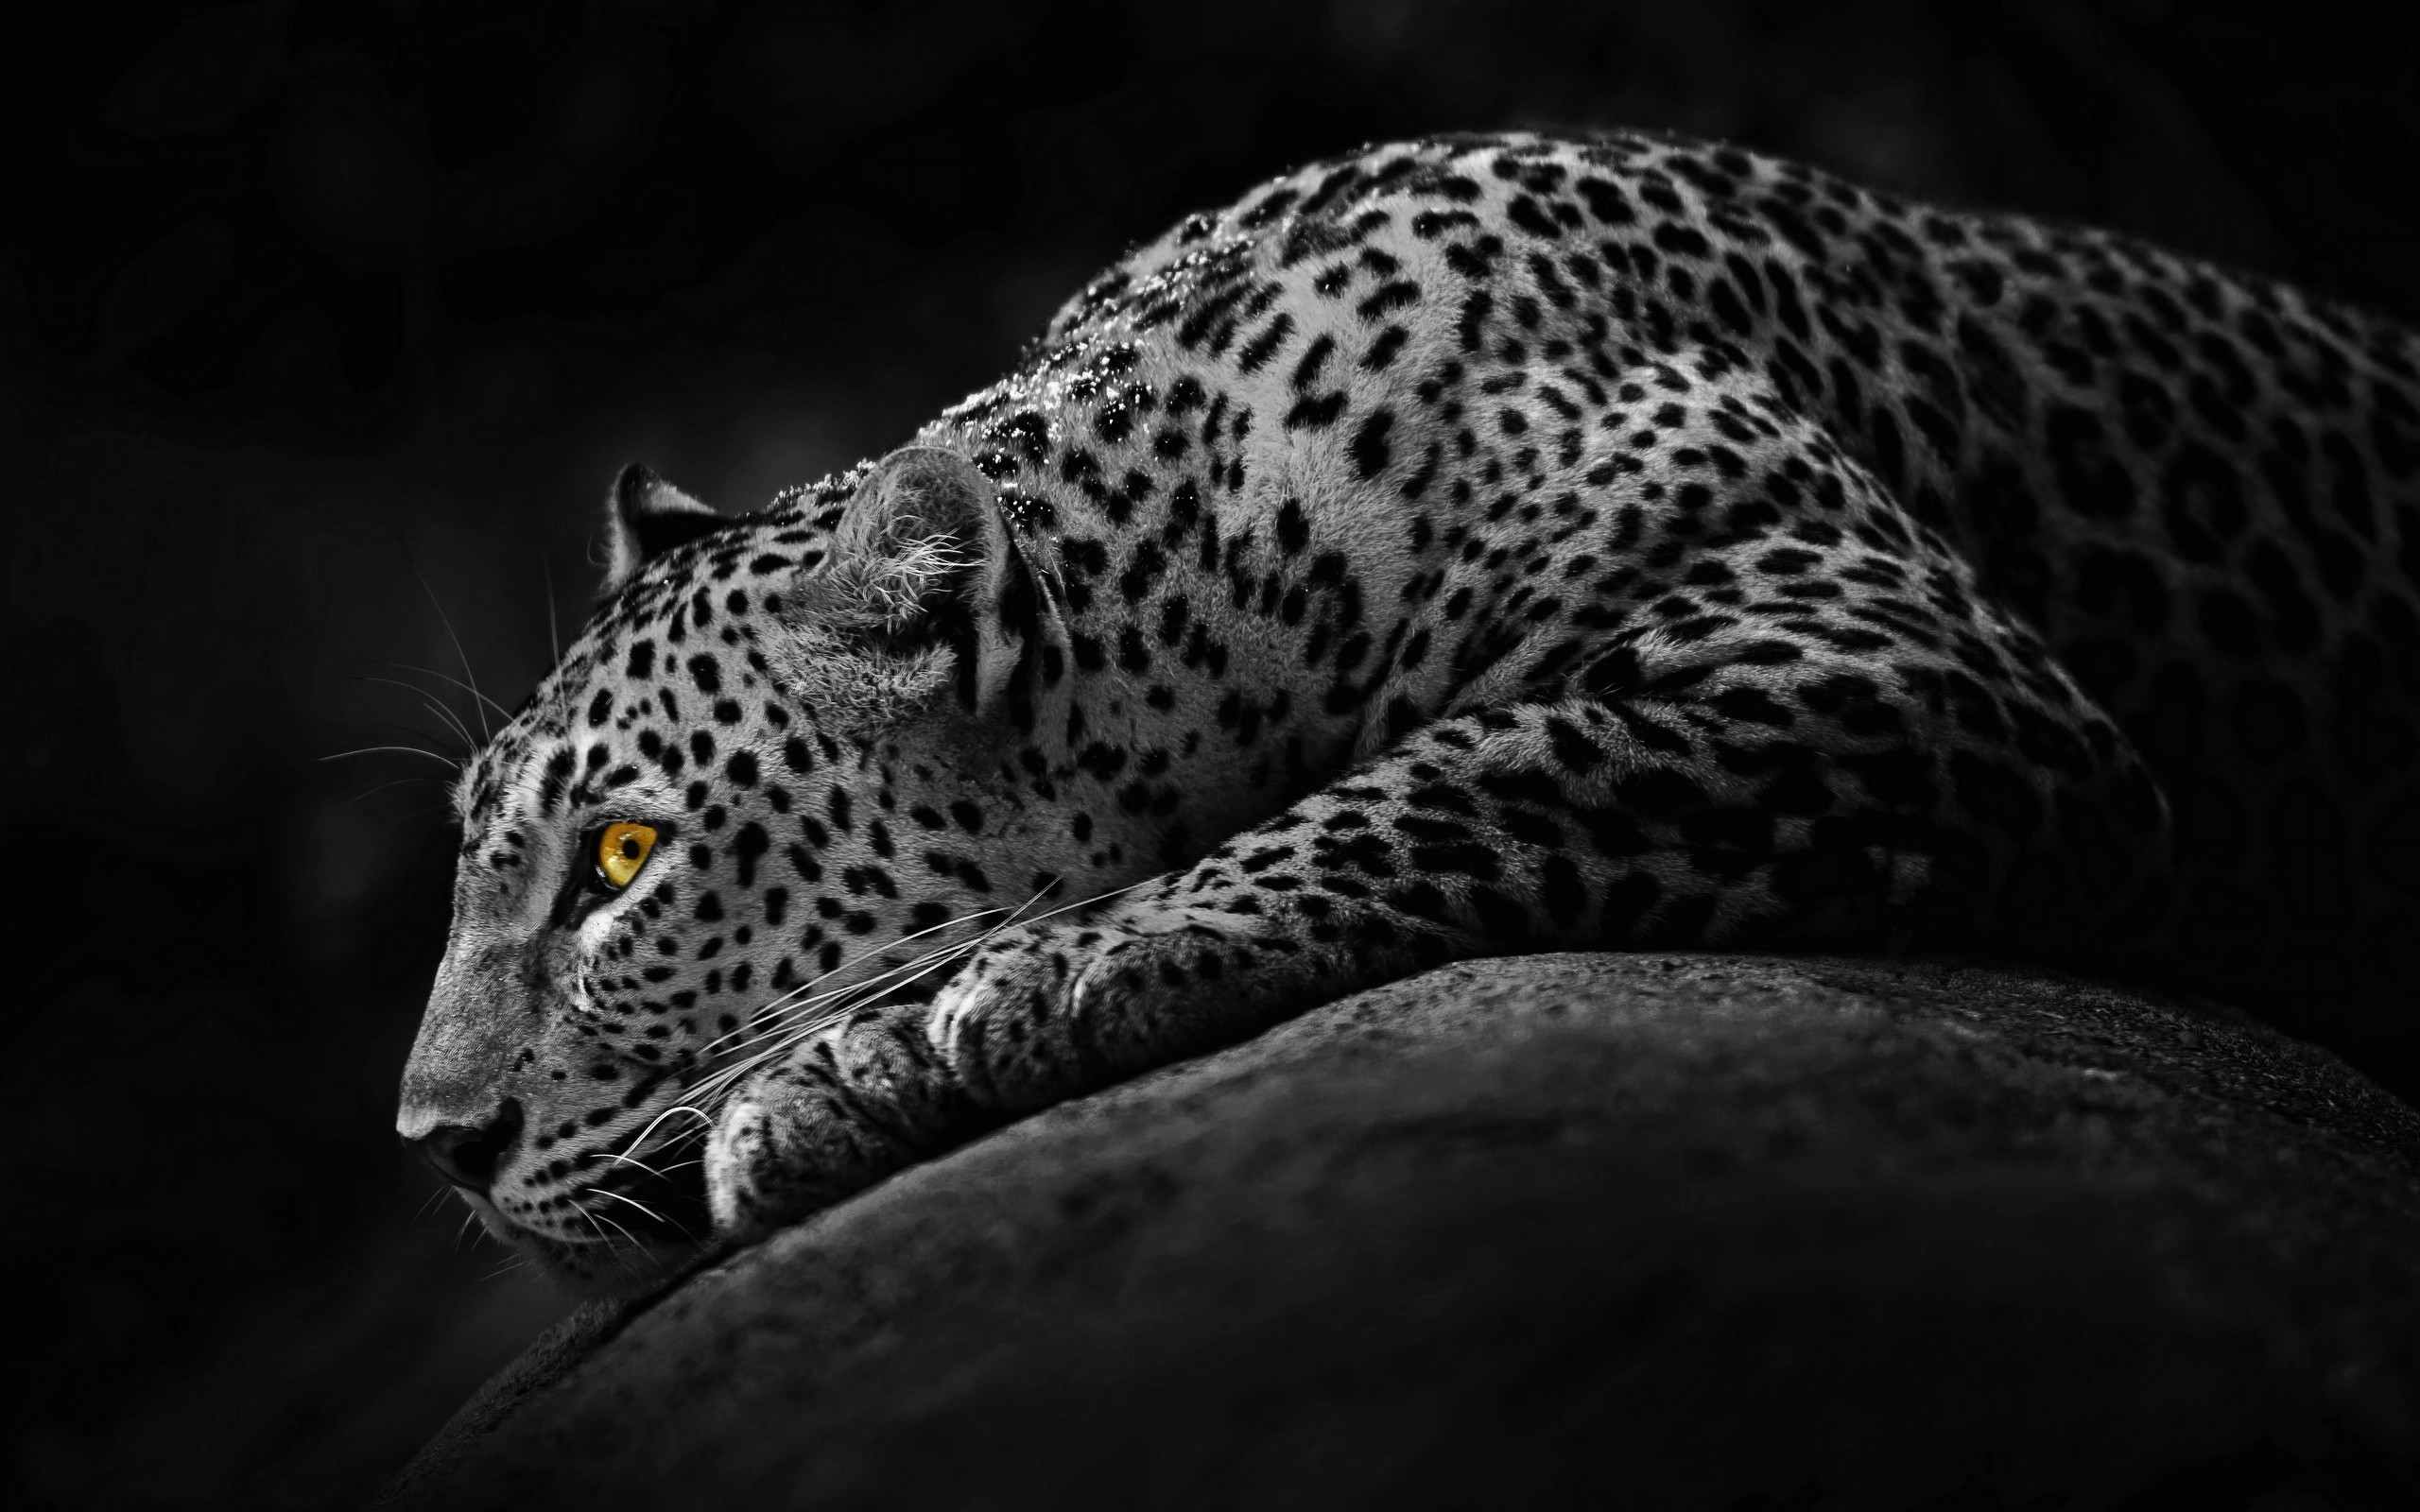 Black Jaguar Animal Wallpaper 2560x1600